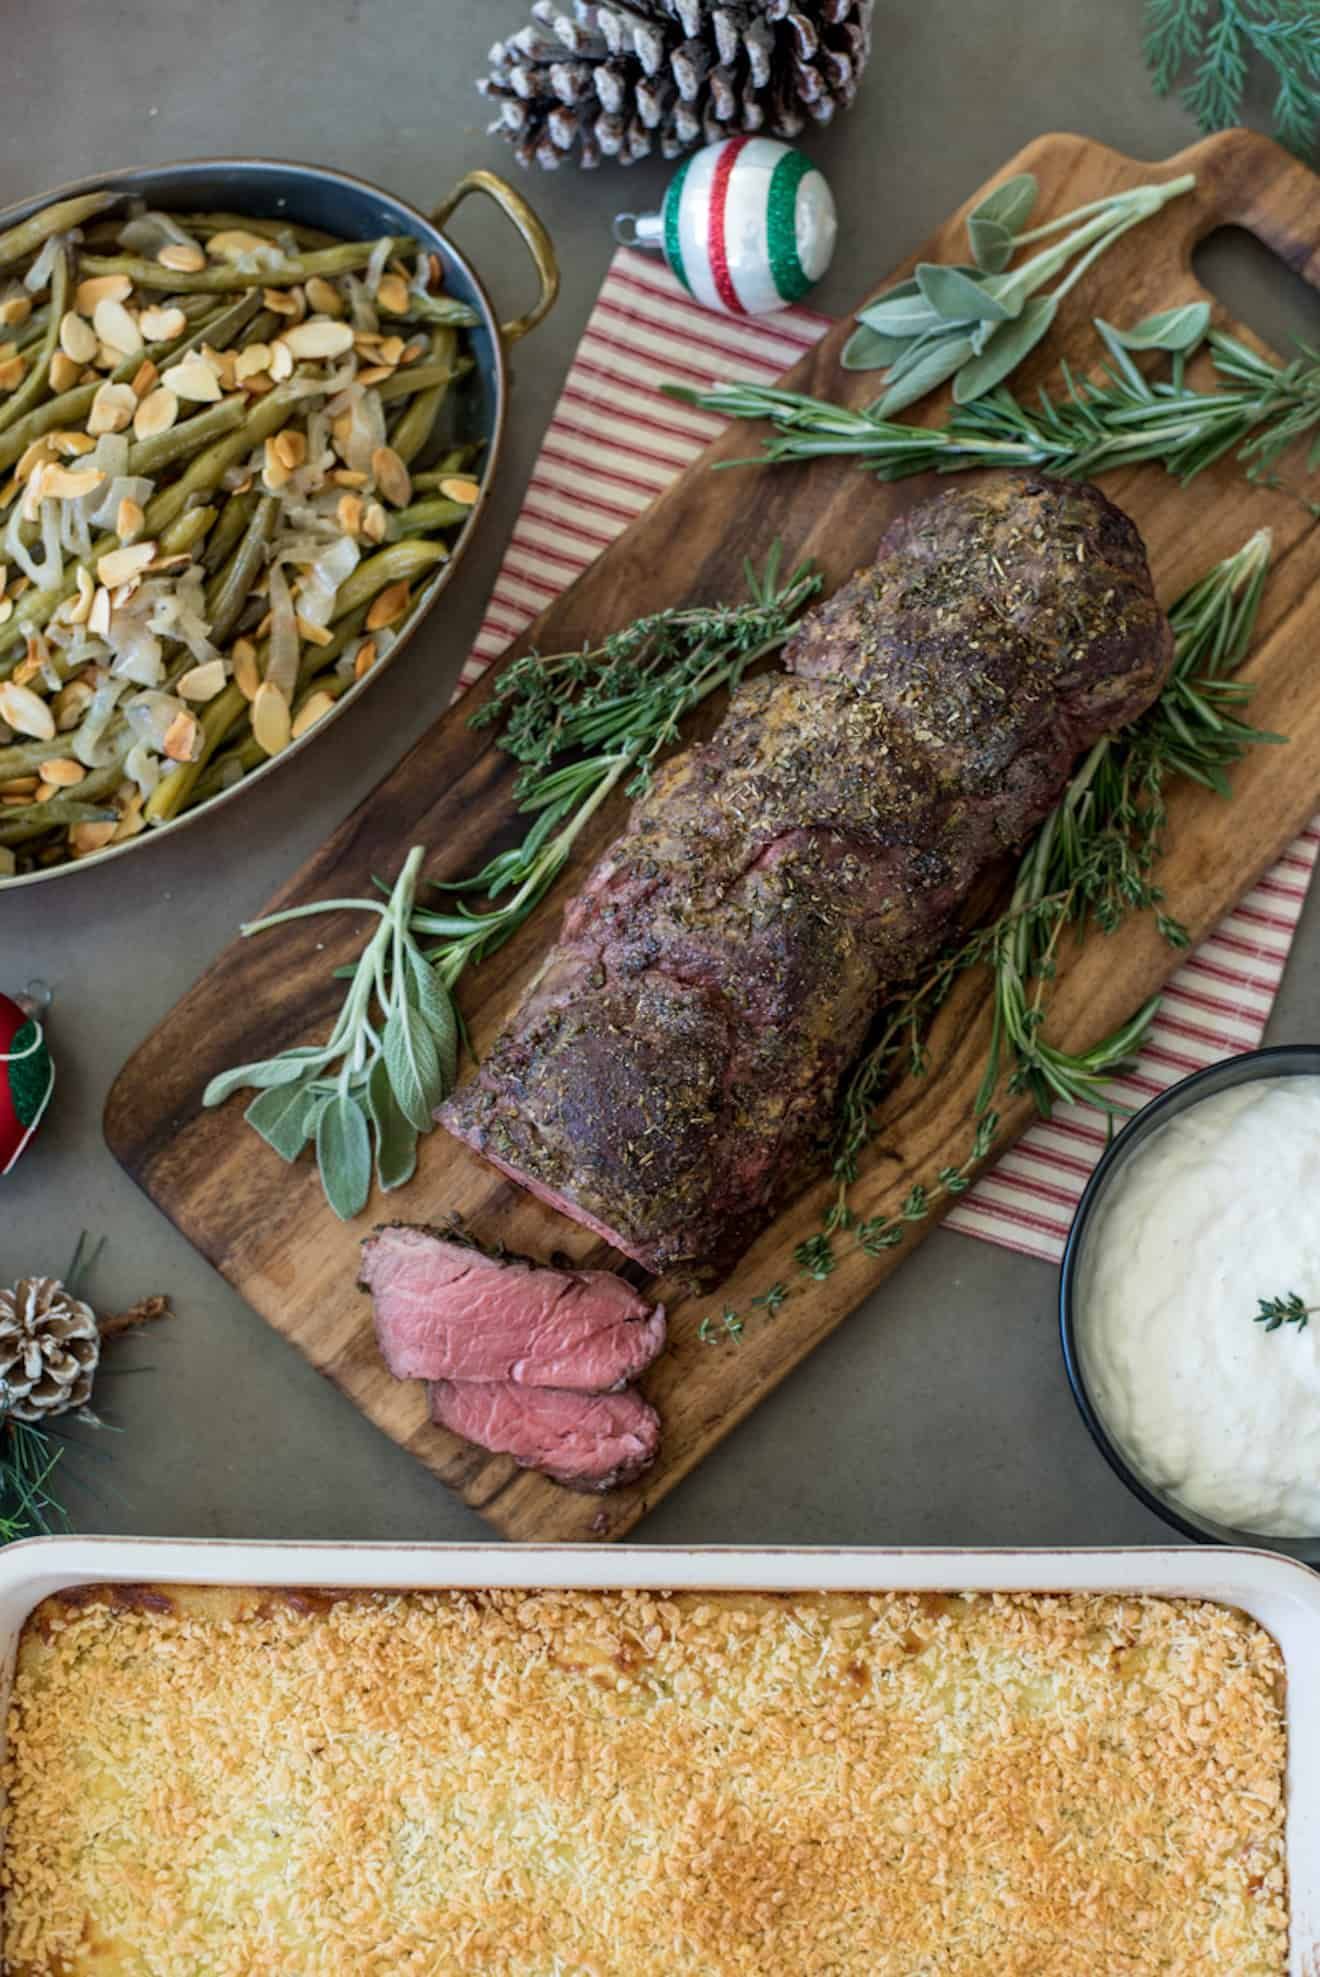 A complete holiday meal of beef tenderloin, green beans and mashed potato casserole